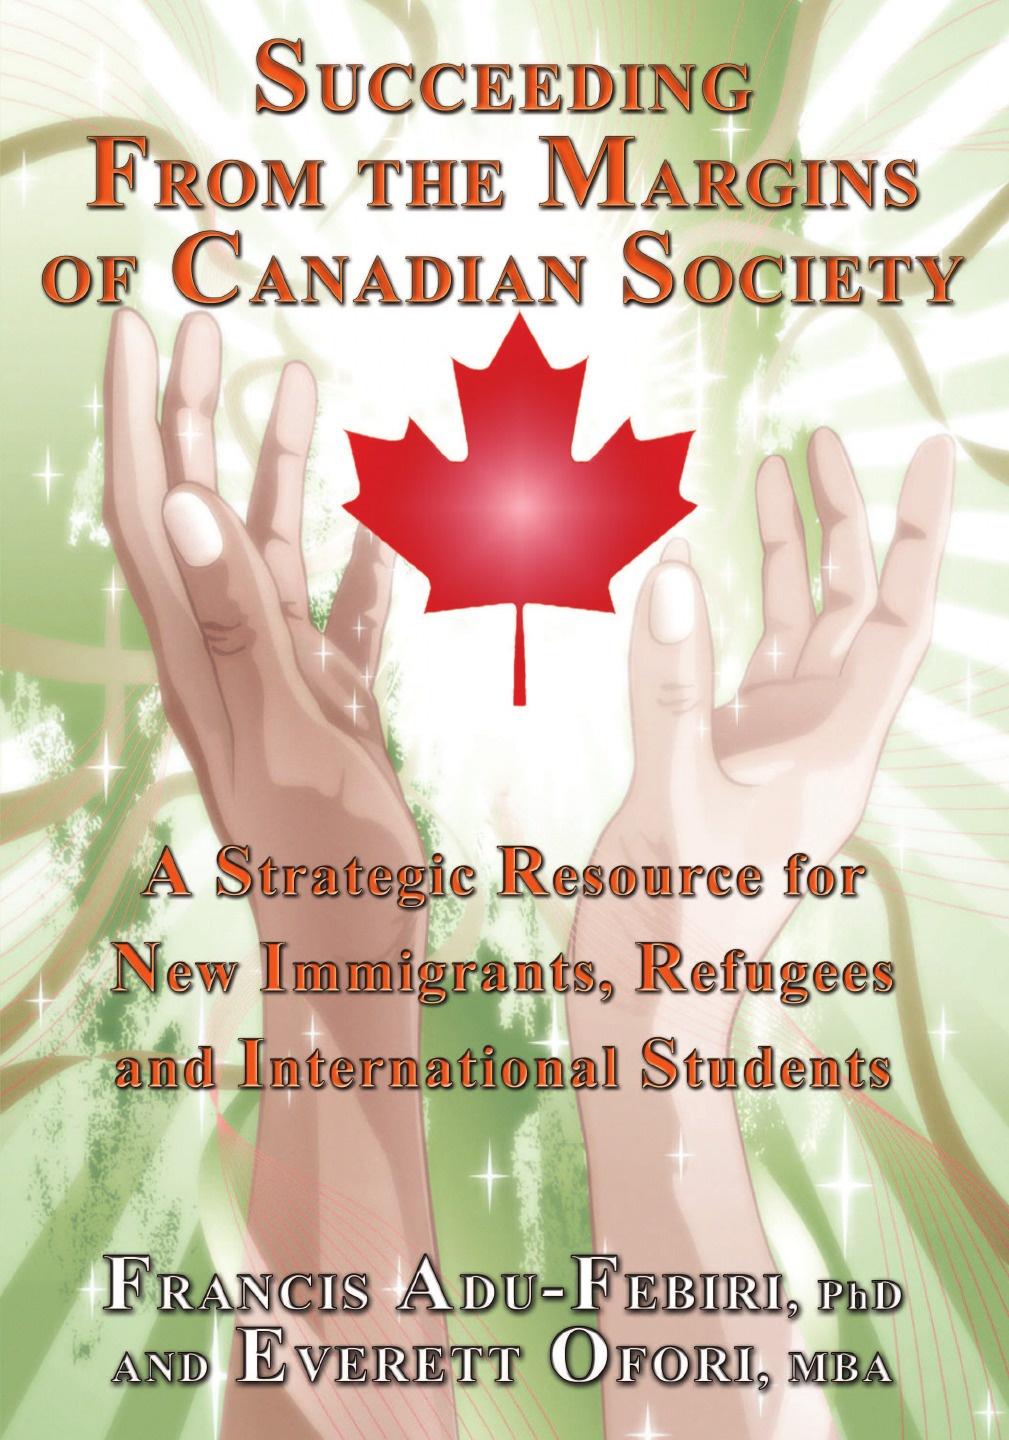 Francis Adu-Febiri, Everett Ofori Succeeding from the Margins of Canadian Society. A Strategic Resource for New Immigrants, Refugees and International Students mukund karanjikar conquering innovation fatigue overcoming the barriers to personal and corporate success